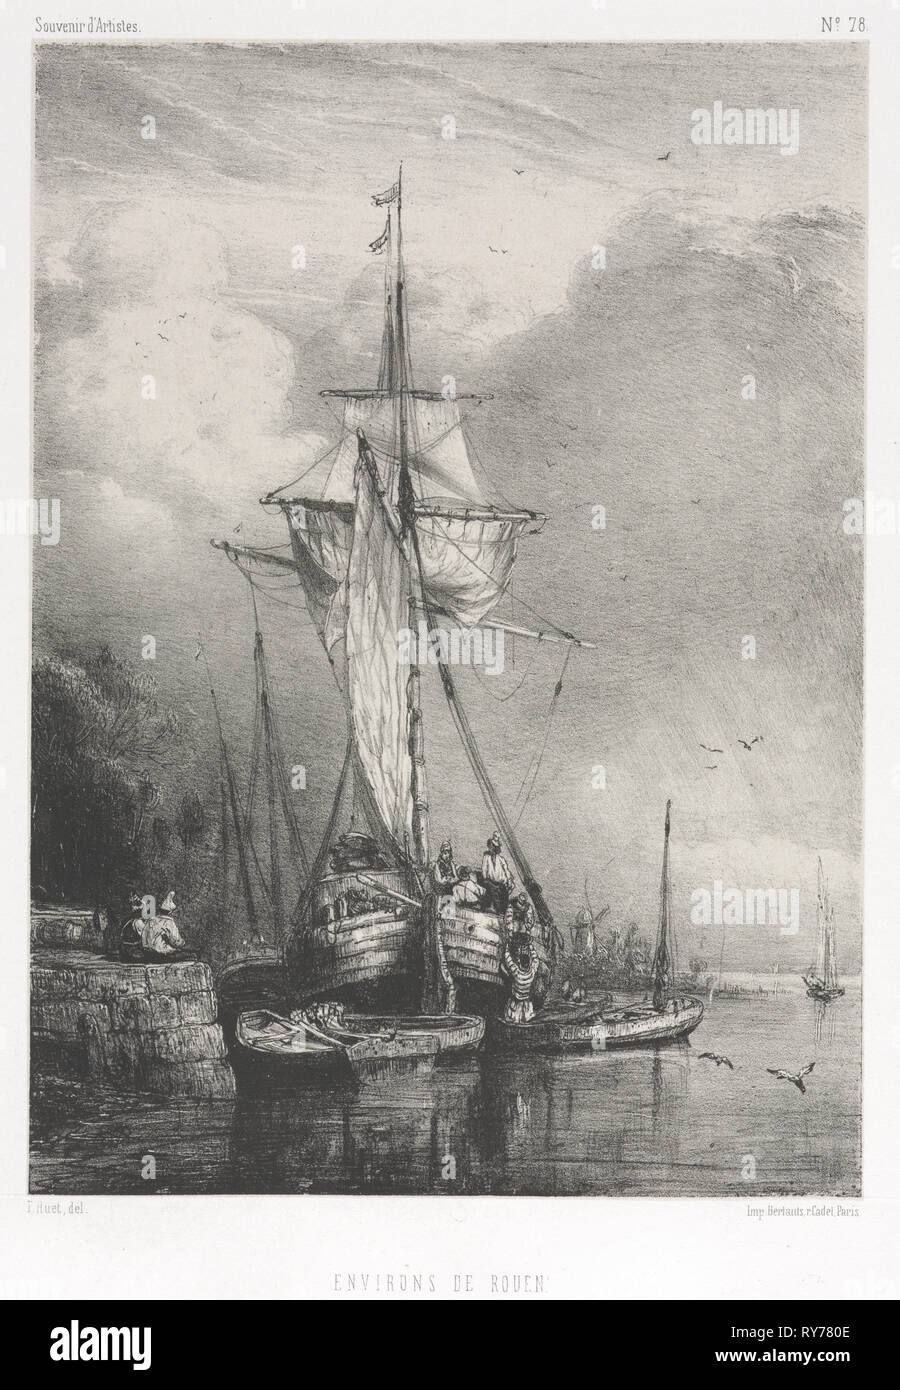 Souvenirs d' Artistes (No. 78): Six Marines: Environs de Rouen, 1832. Paul Hüet (French, 1803-1869). Lithograph on chine collé; sheet: 44.8 x 31.3 cm (17 5/8 x 12 5/16 in.); image: 22.7 x 16.4 cm (8 15/16 x 6 7/16 in - Stock Image